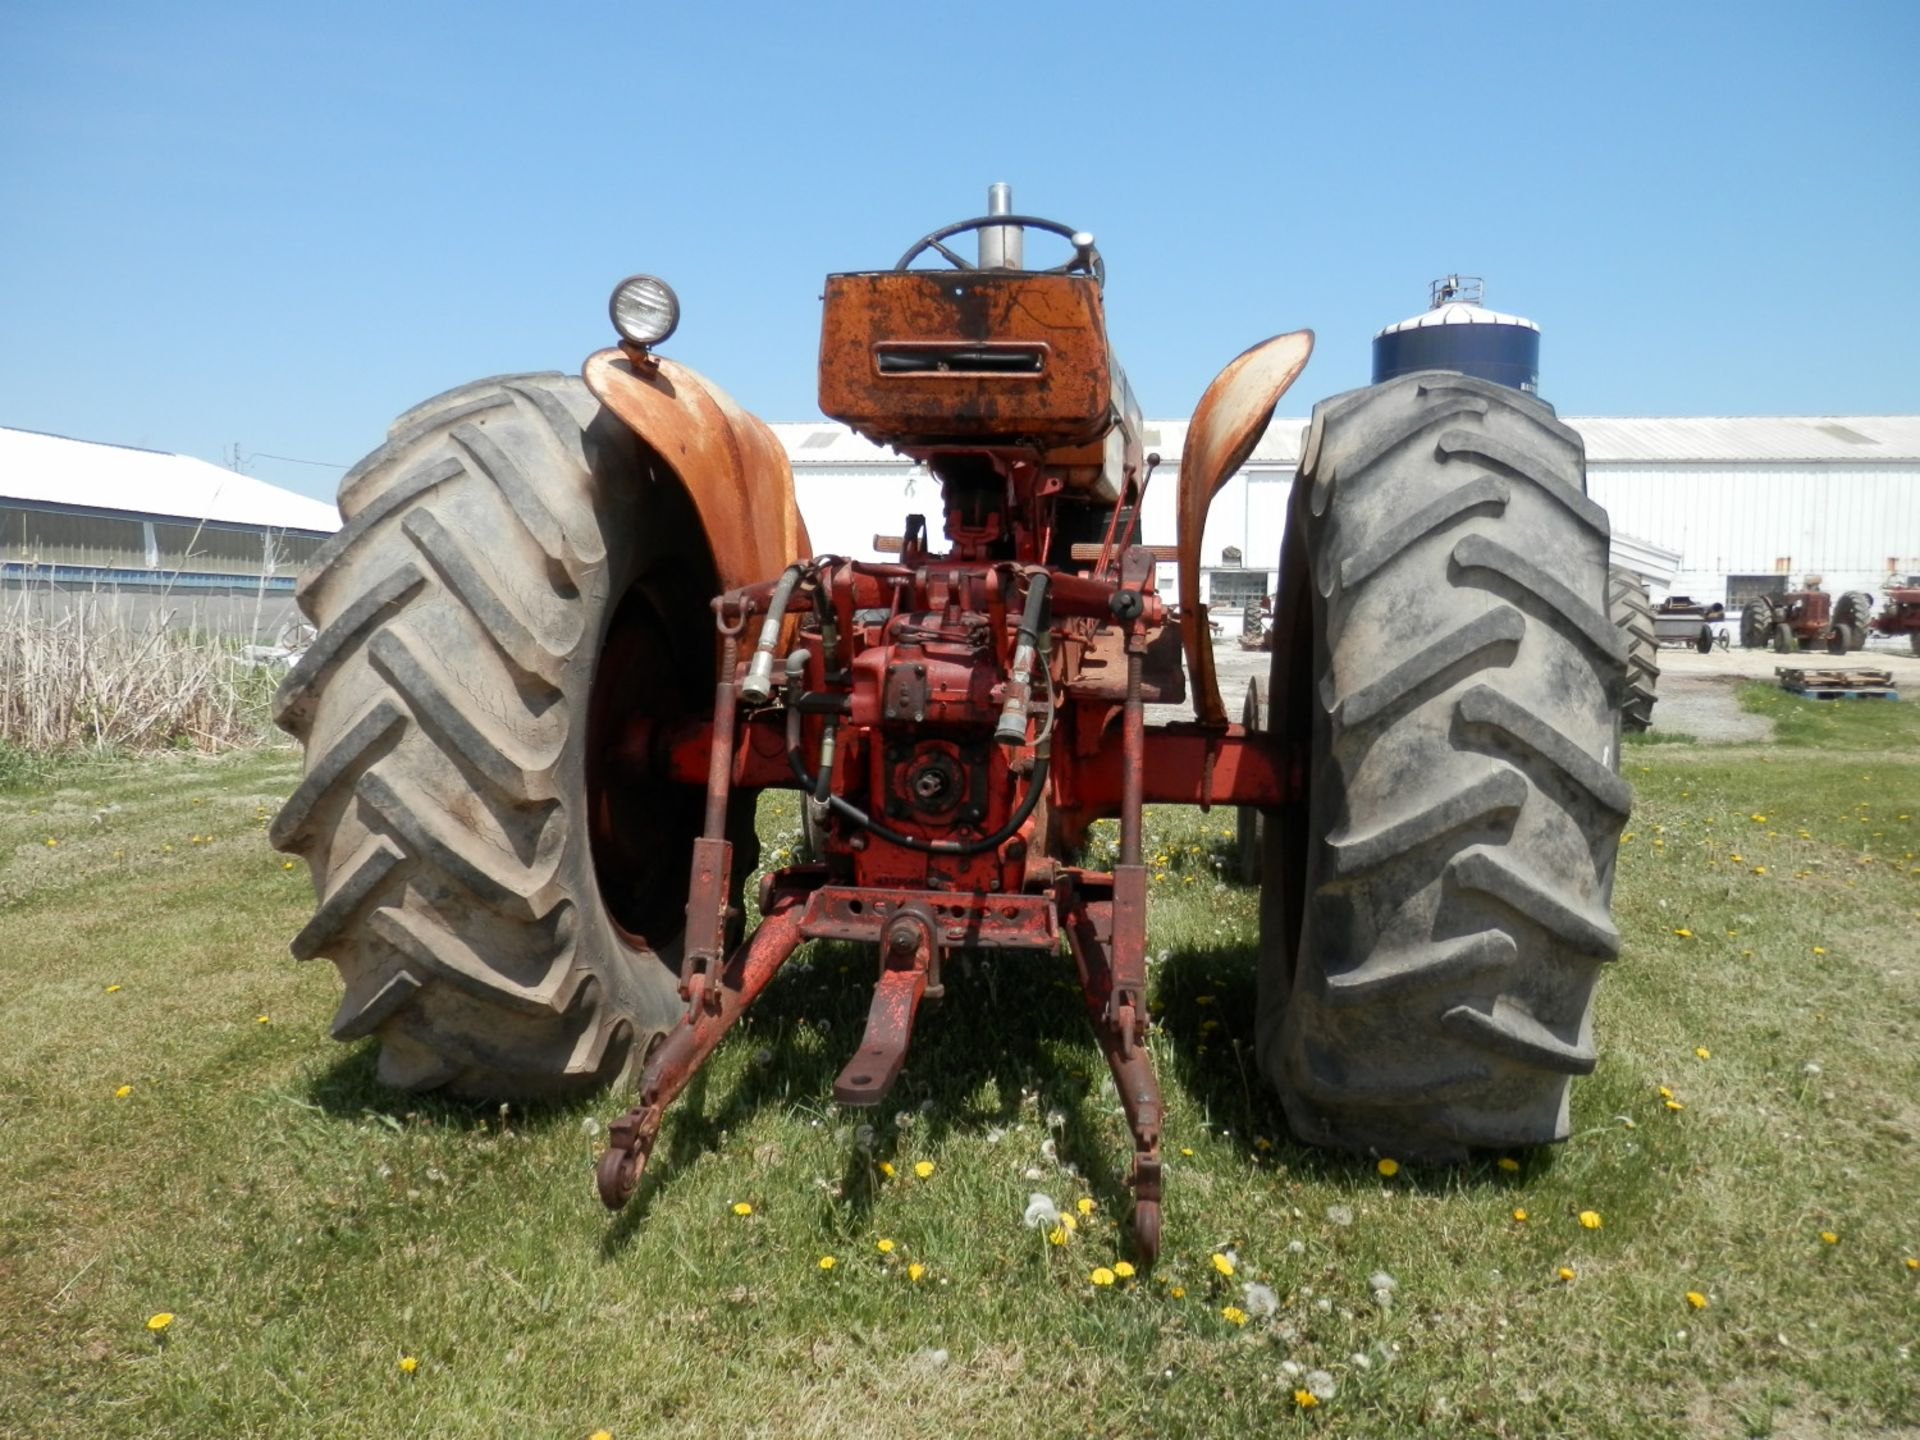 JI CASE 730 GAS TRACTOR - Image 6 of 10